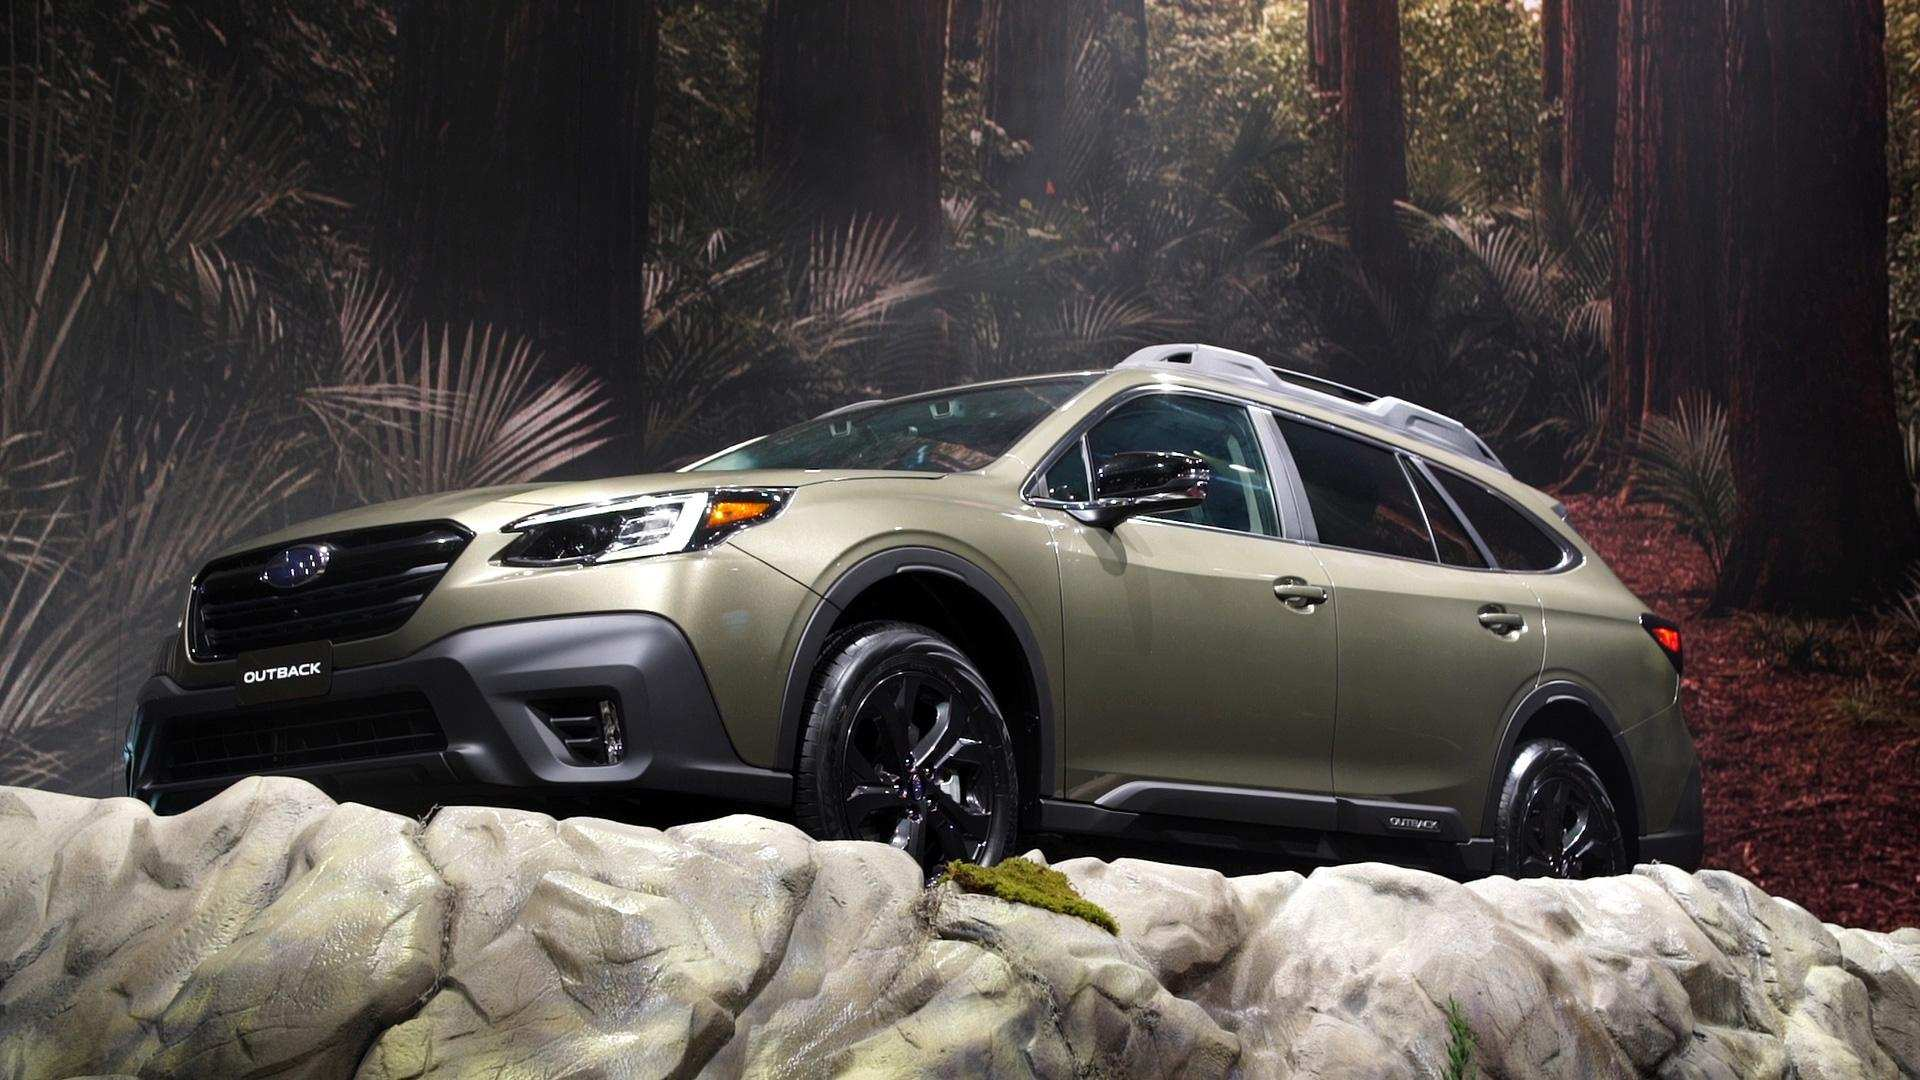 97 The Best Subaru Outback 2020 Release Review And Release Date